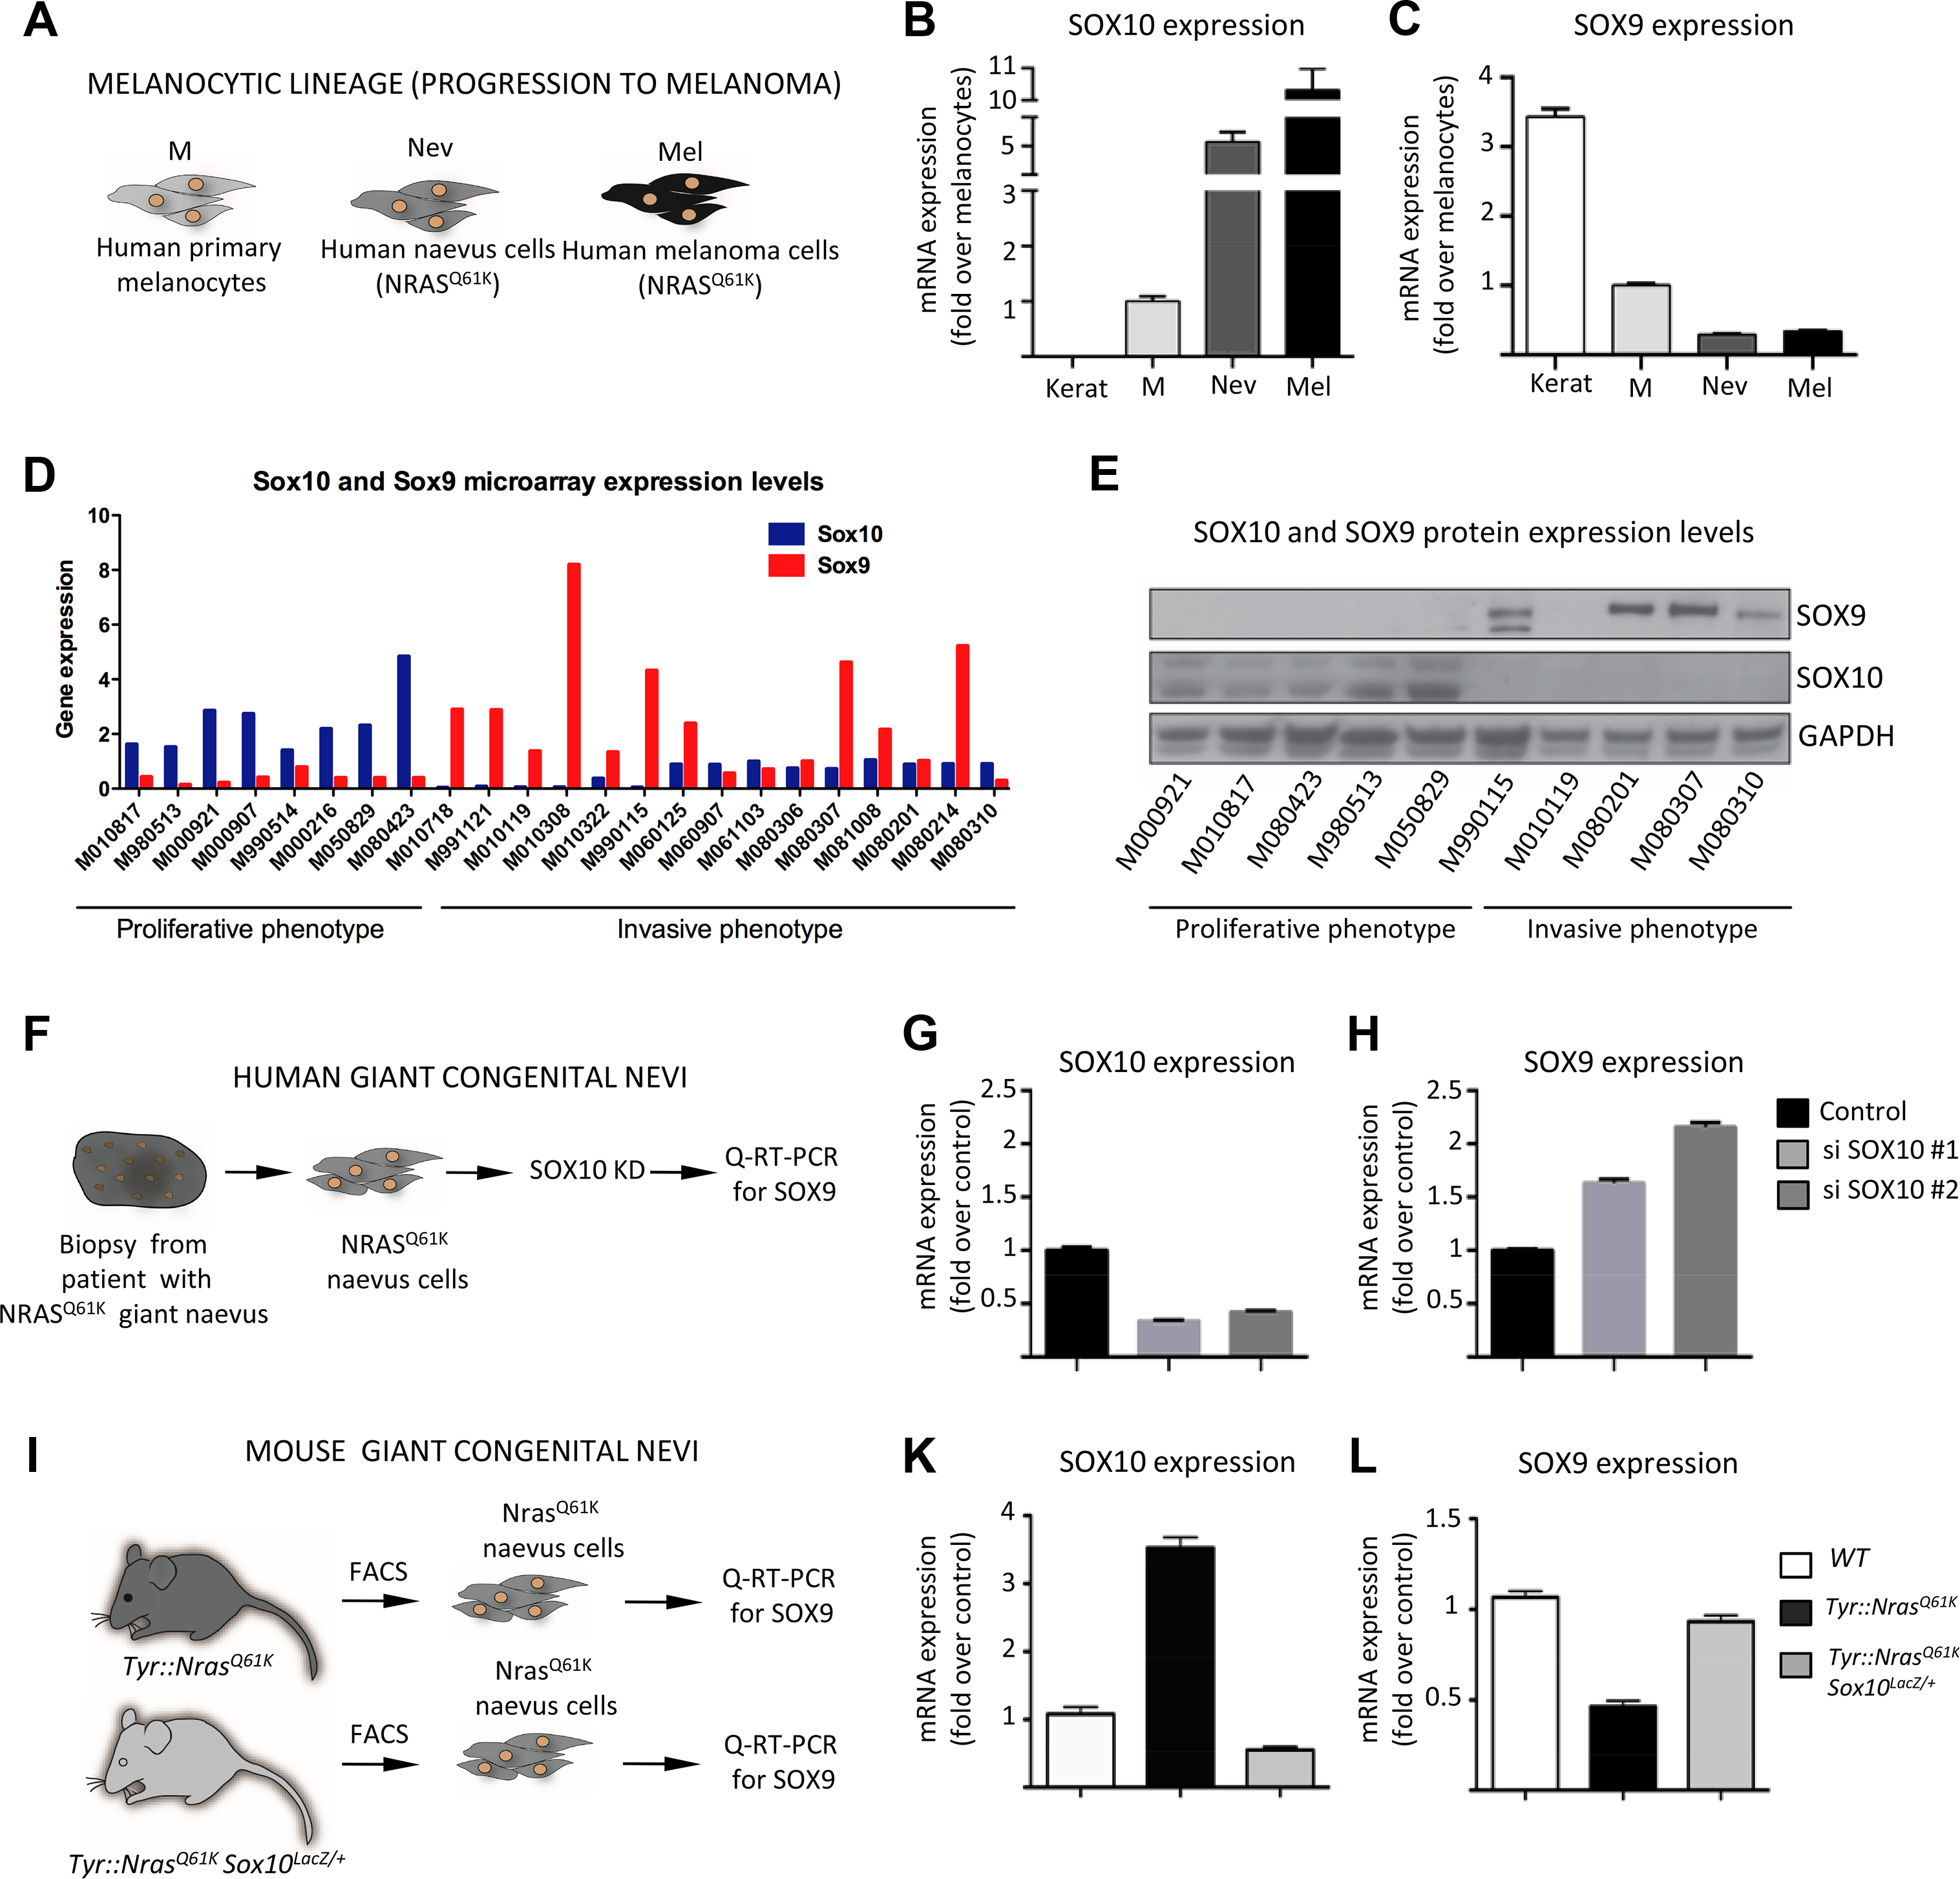 SOX10 knockdown results in elevated SOX9 expression in mouse and human melanocytes.